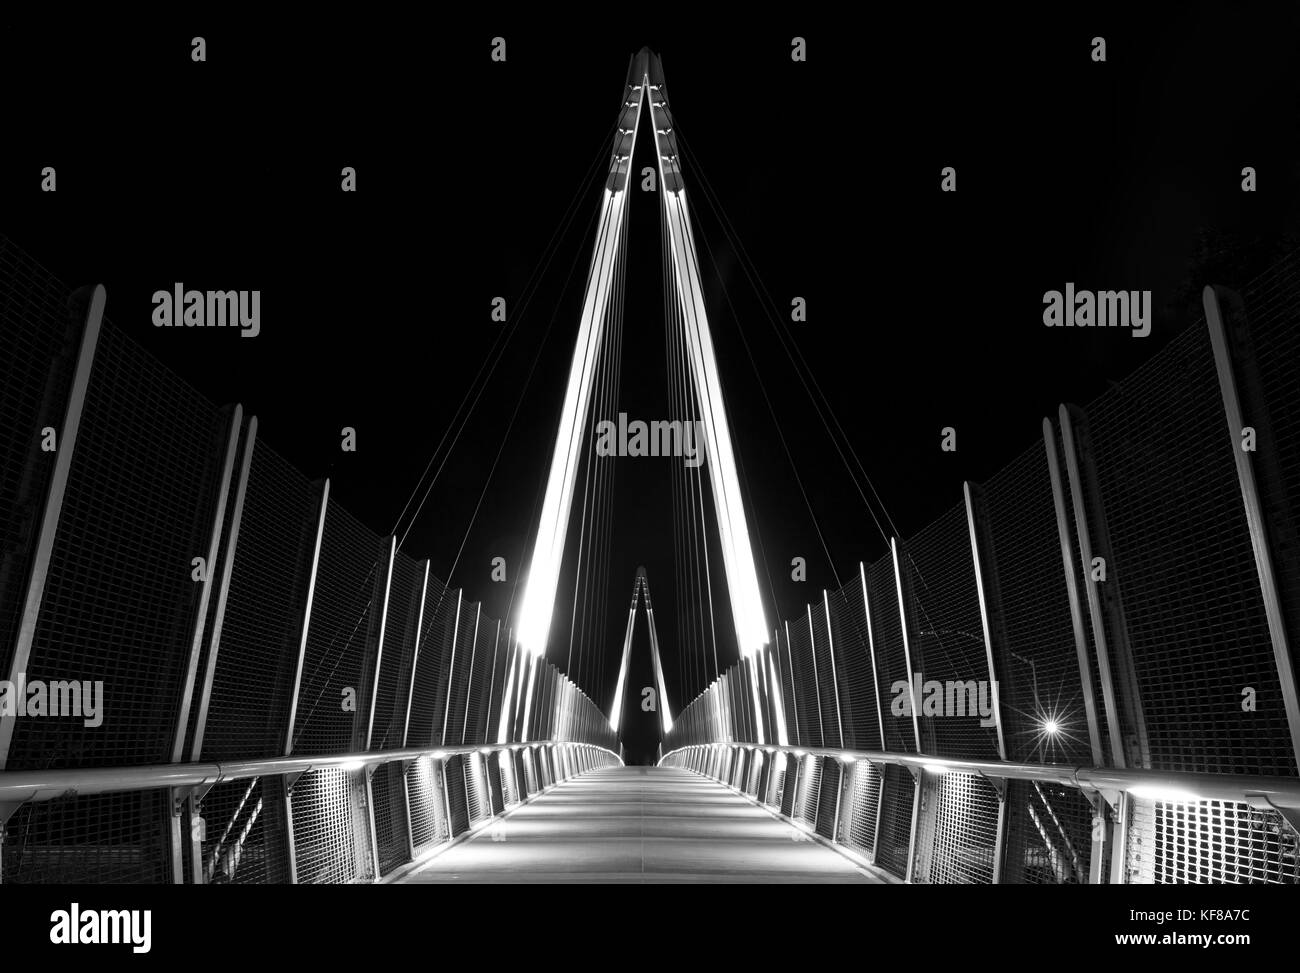 Pedestrian bridge at night. Graphical architectural structure - Stock Image